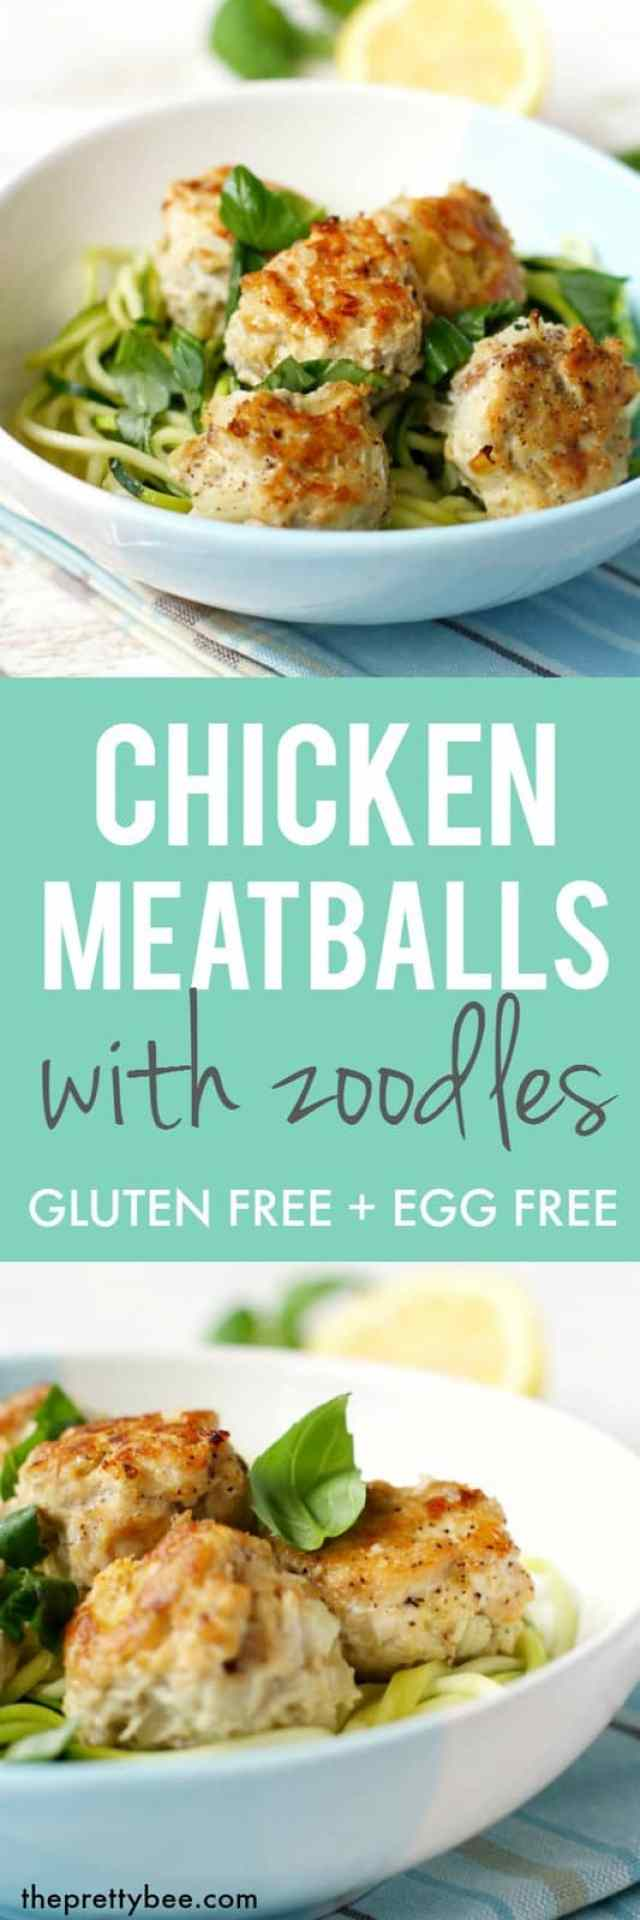 Chicken meatballs and zoodles is a tasty and easy dinner that everyone loves!